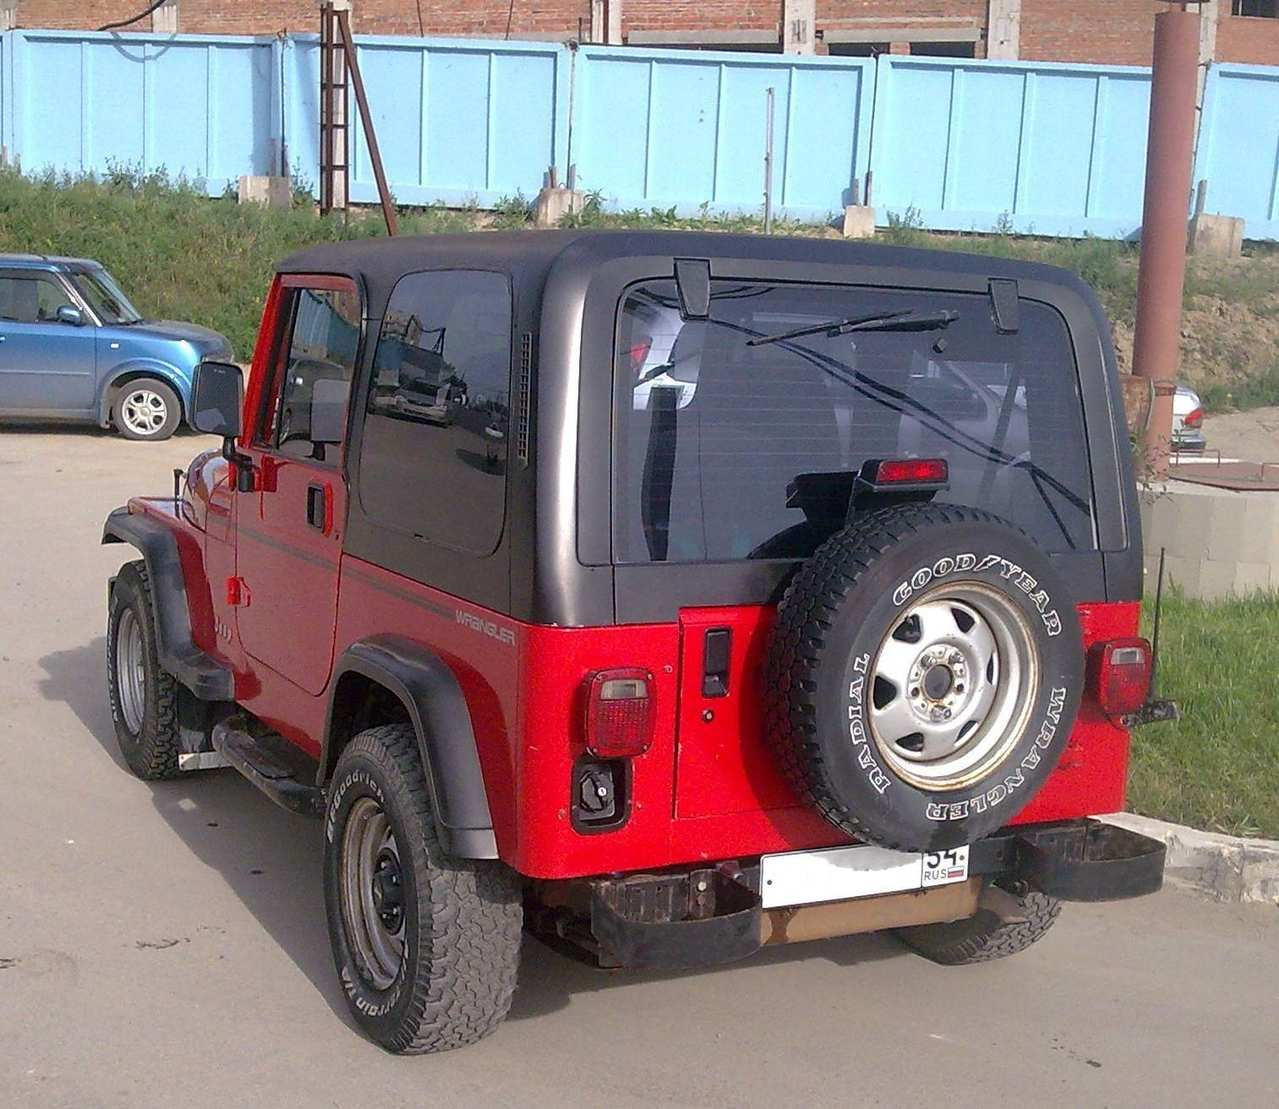 1994 JEEP Wrangler Pictures, 2.5l., Gasoline, Manual For Sale